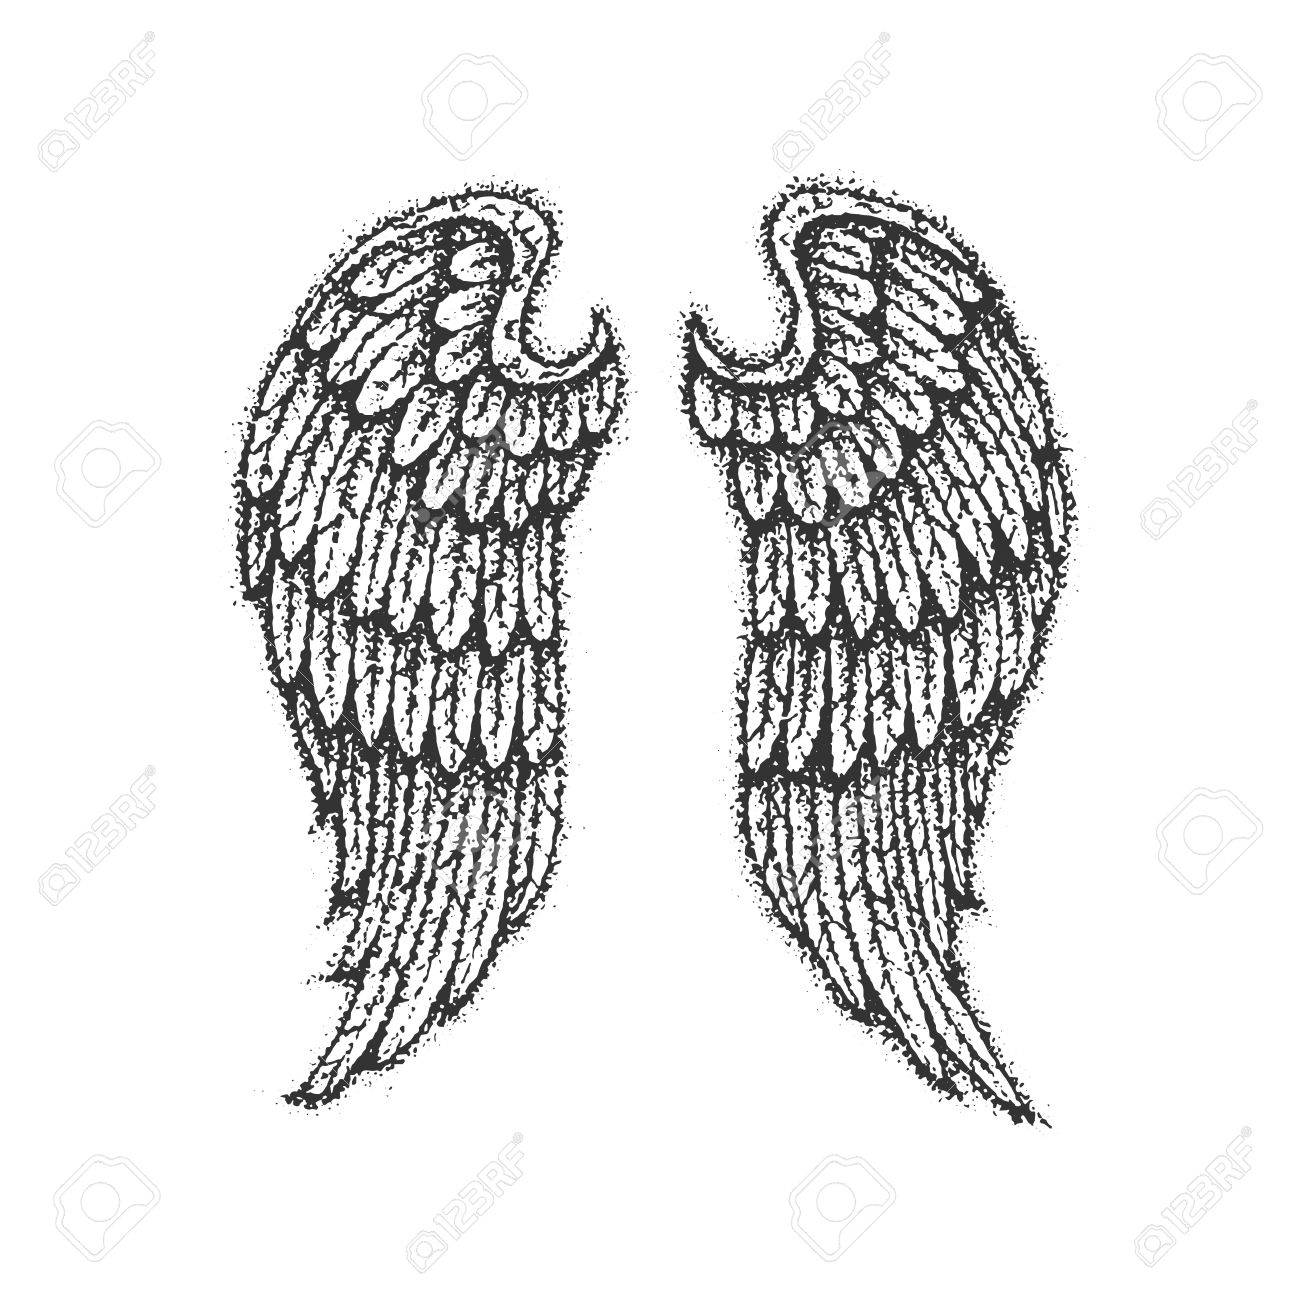 Dotwork angel wings royalty free cliparts vectors and stock dotwork angel wings stock vector 72967384 thecheapjerseys Images